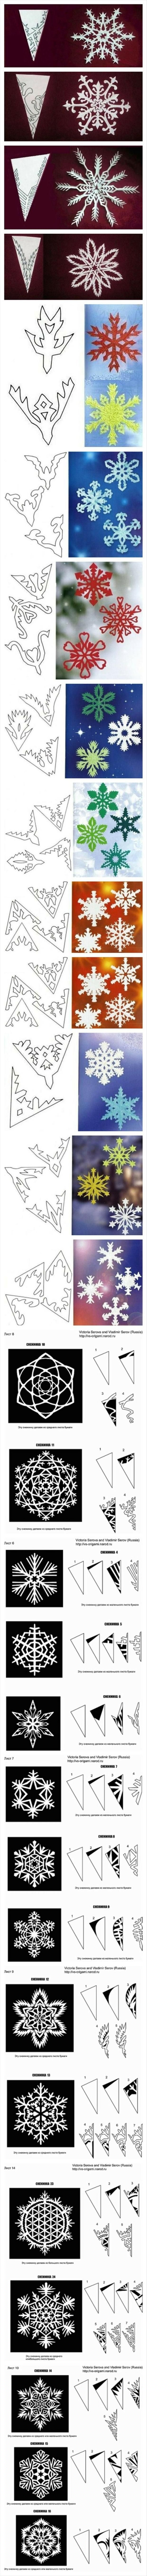 cutout snowflake patterns